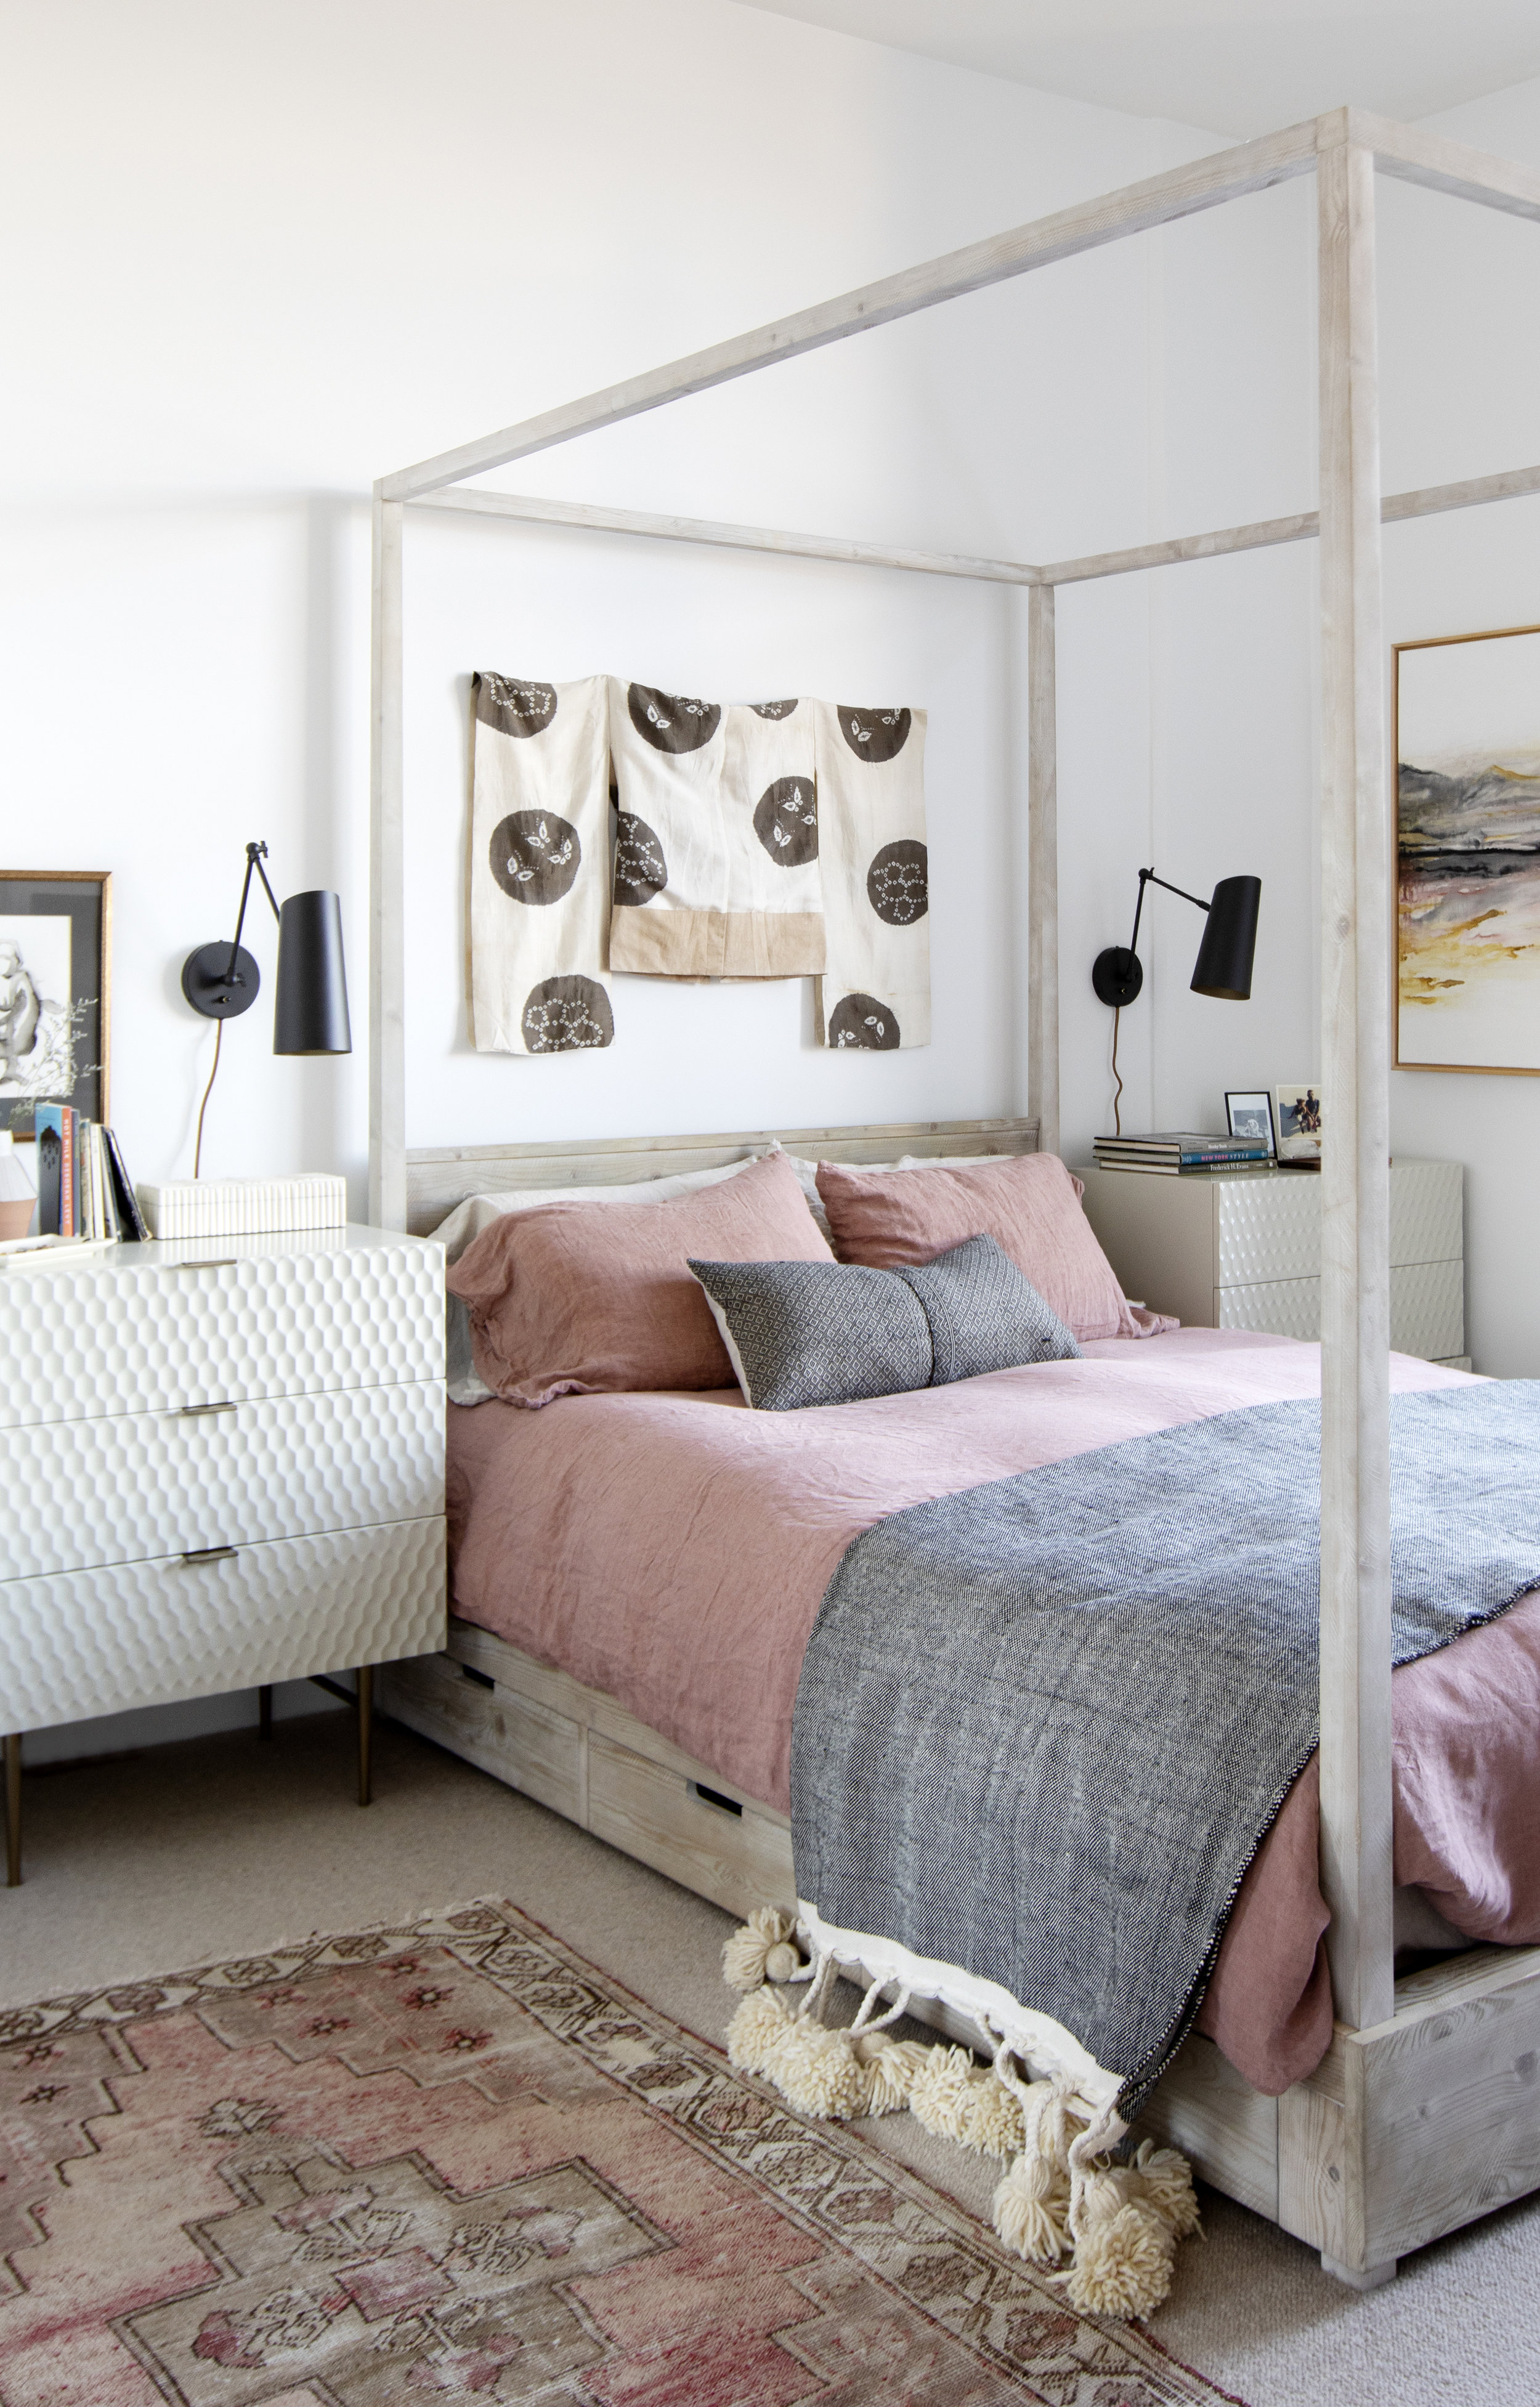 The master bedroom includes a four poster bed, with beautiful pink sheets and an accent rug.